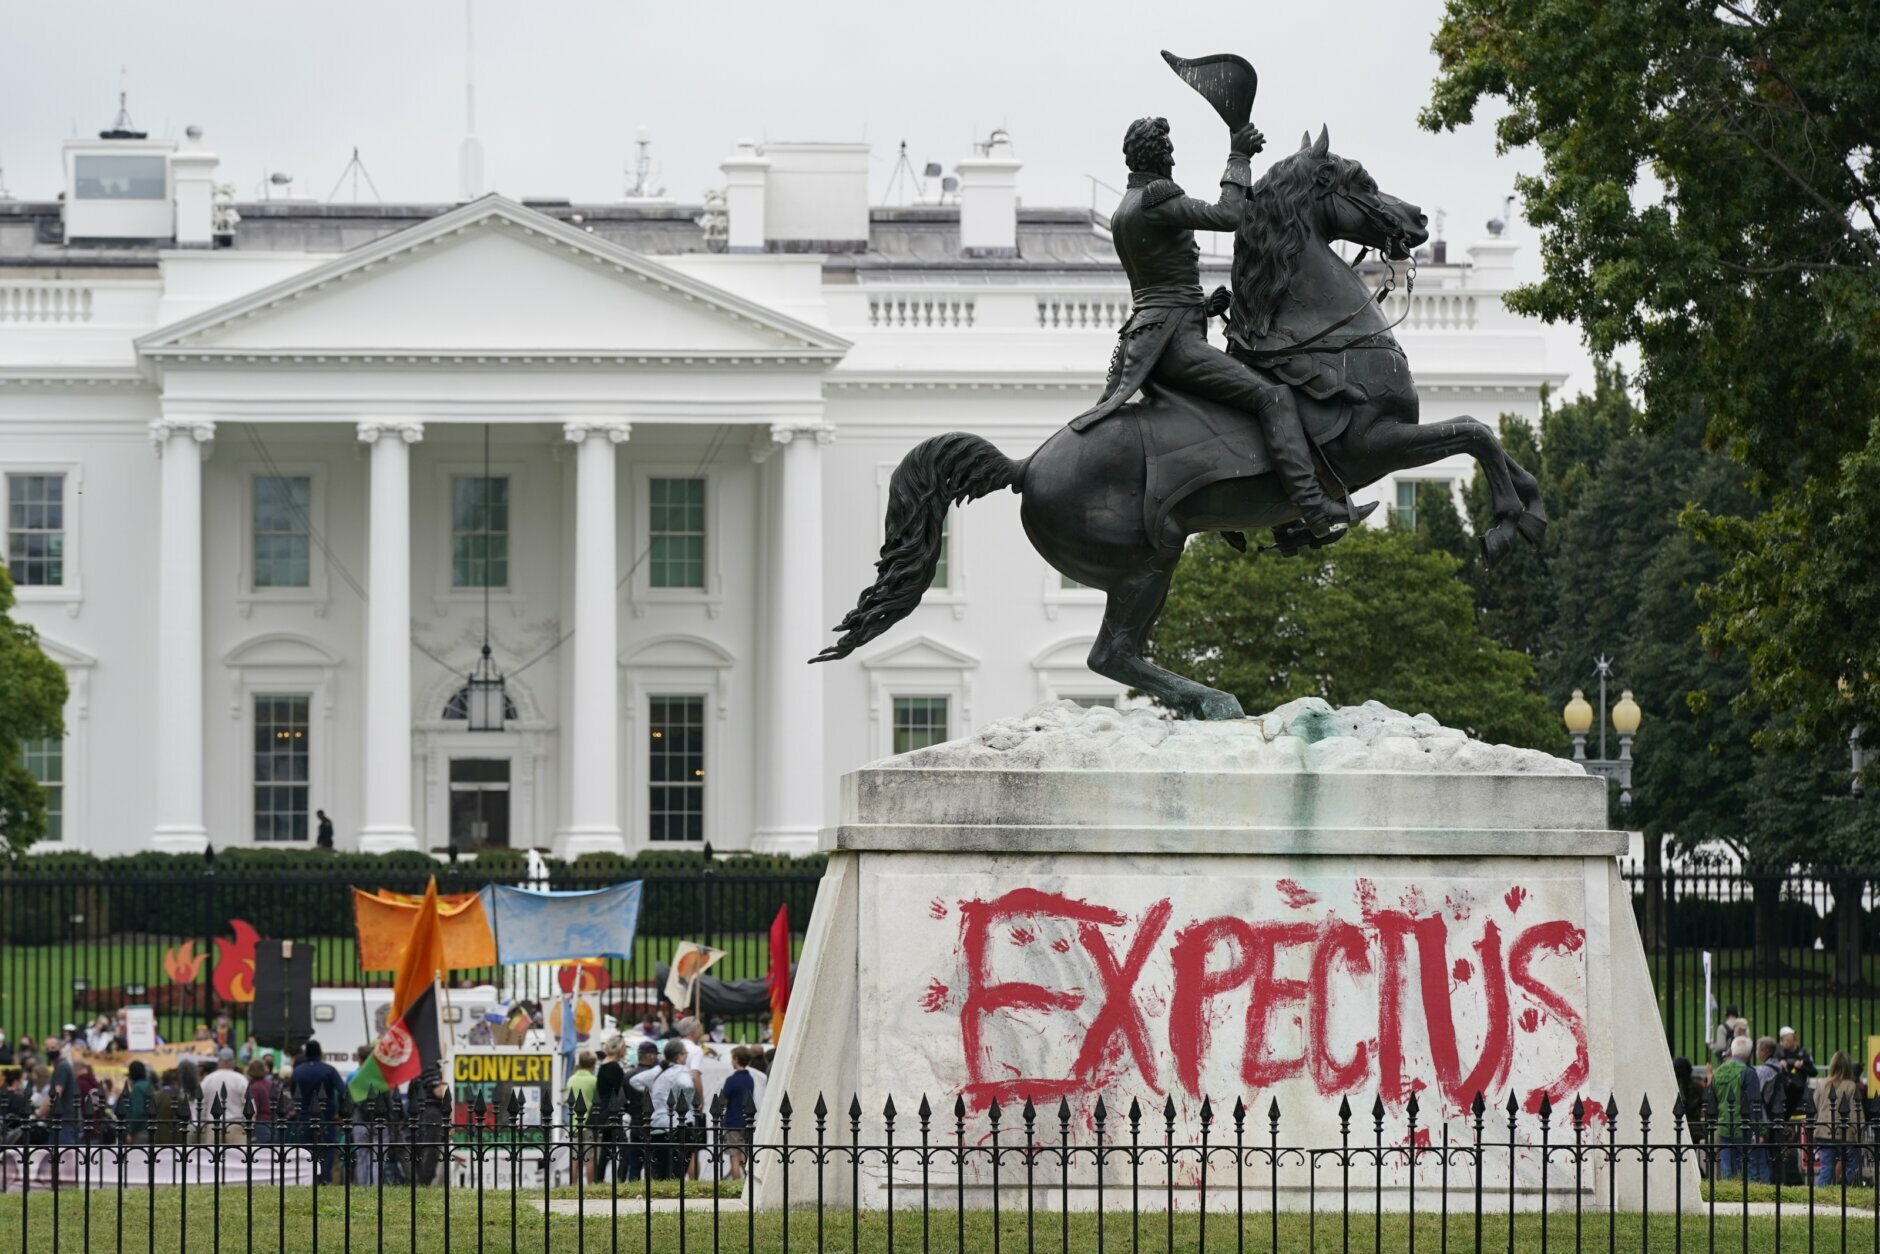 """The words """"Expect us"""" is painted on the bottom of the equestrian statue of President Andrew Jackson in Lafayette Park as protesters gather to urge the Biden administration to do more to combat climate change and ban fossil fuels outside the White House in Washington, Tuesday 12 October 2021.  The words are part of the sentence """"Respect us, or expect us"""" which native women have used while protesting against oil company Enbridge's Line 3 pipeline through Minnesota.  (AP Photo / Patrick Semansky)"""